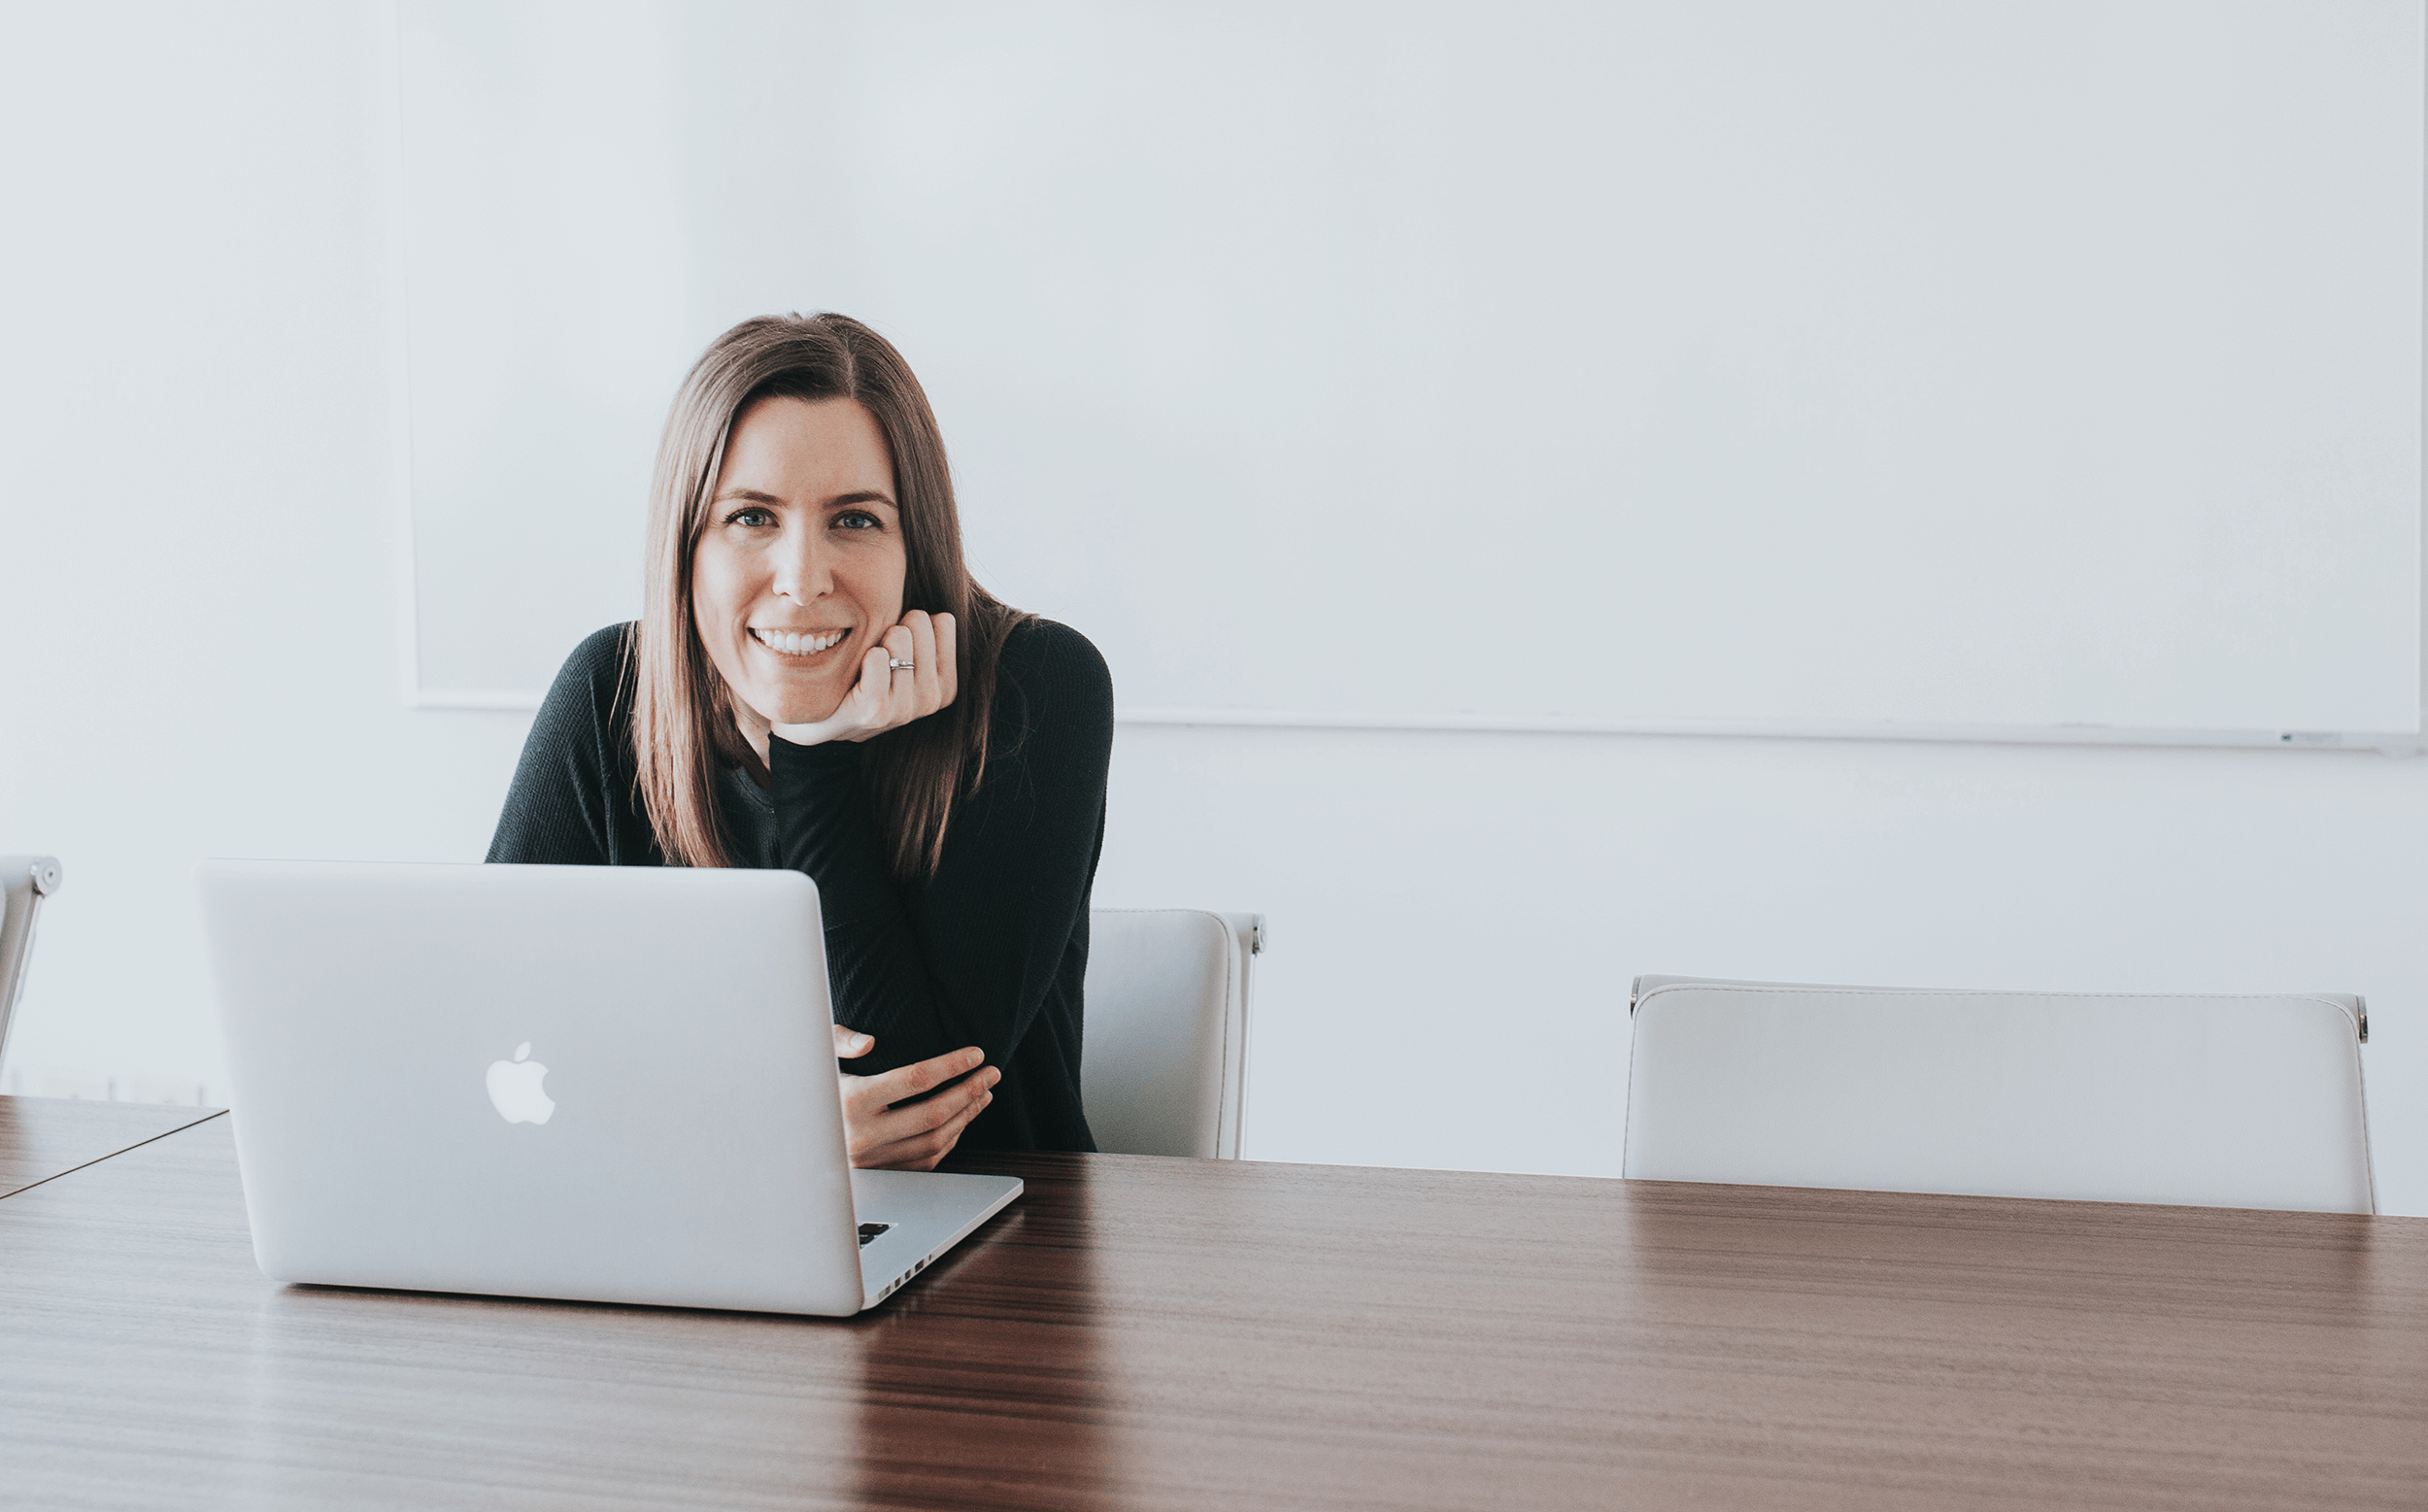 I'm Melinda Livsey and I work with graphic design grads who want to become successful freelancers, attract clients who value design, and make money. -